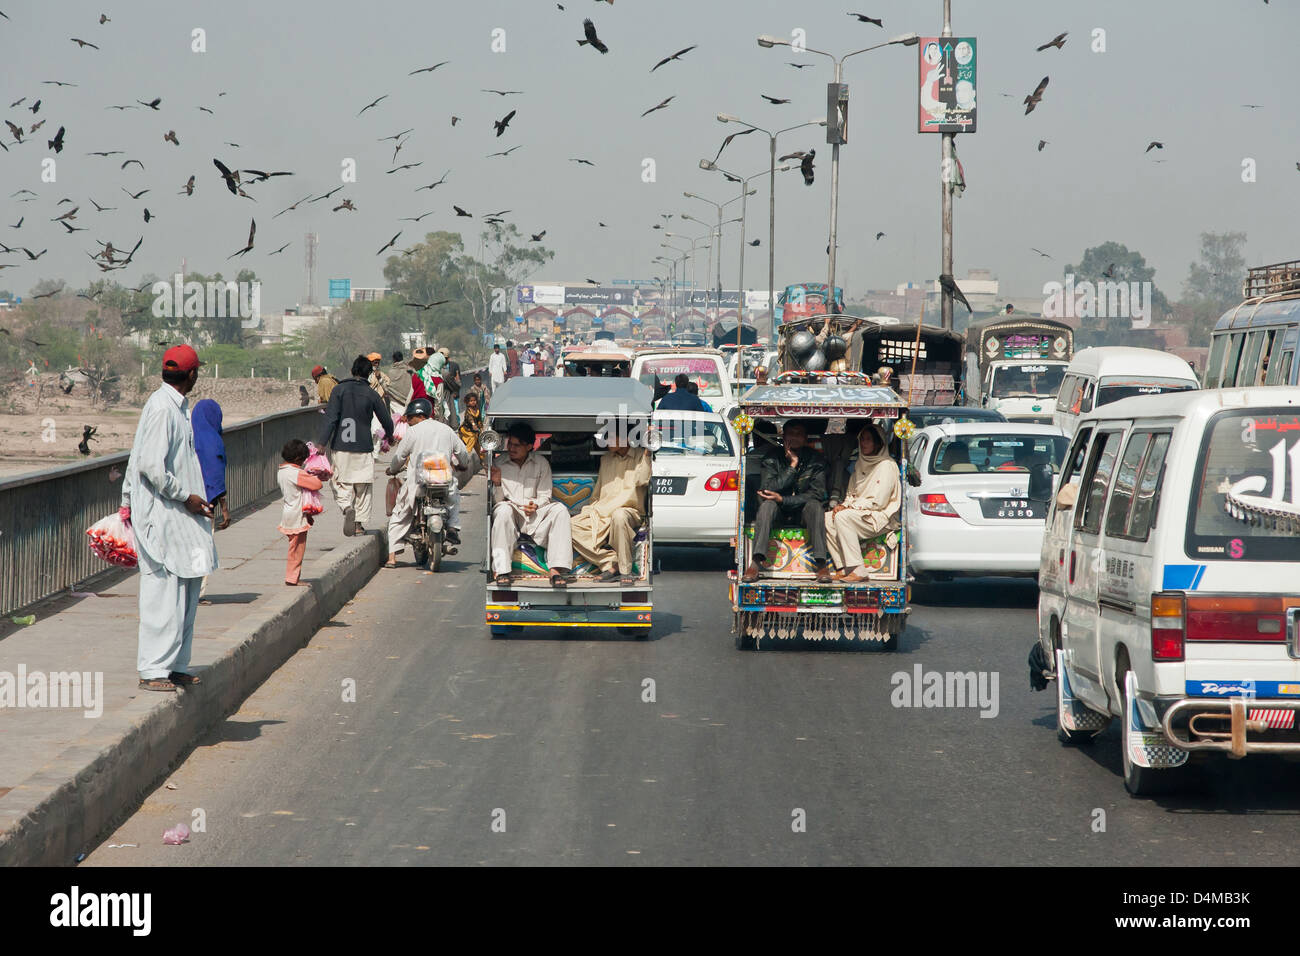 Lahore, Pakistan, arterial road towards the center of Lahore - Stock Image